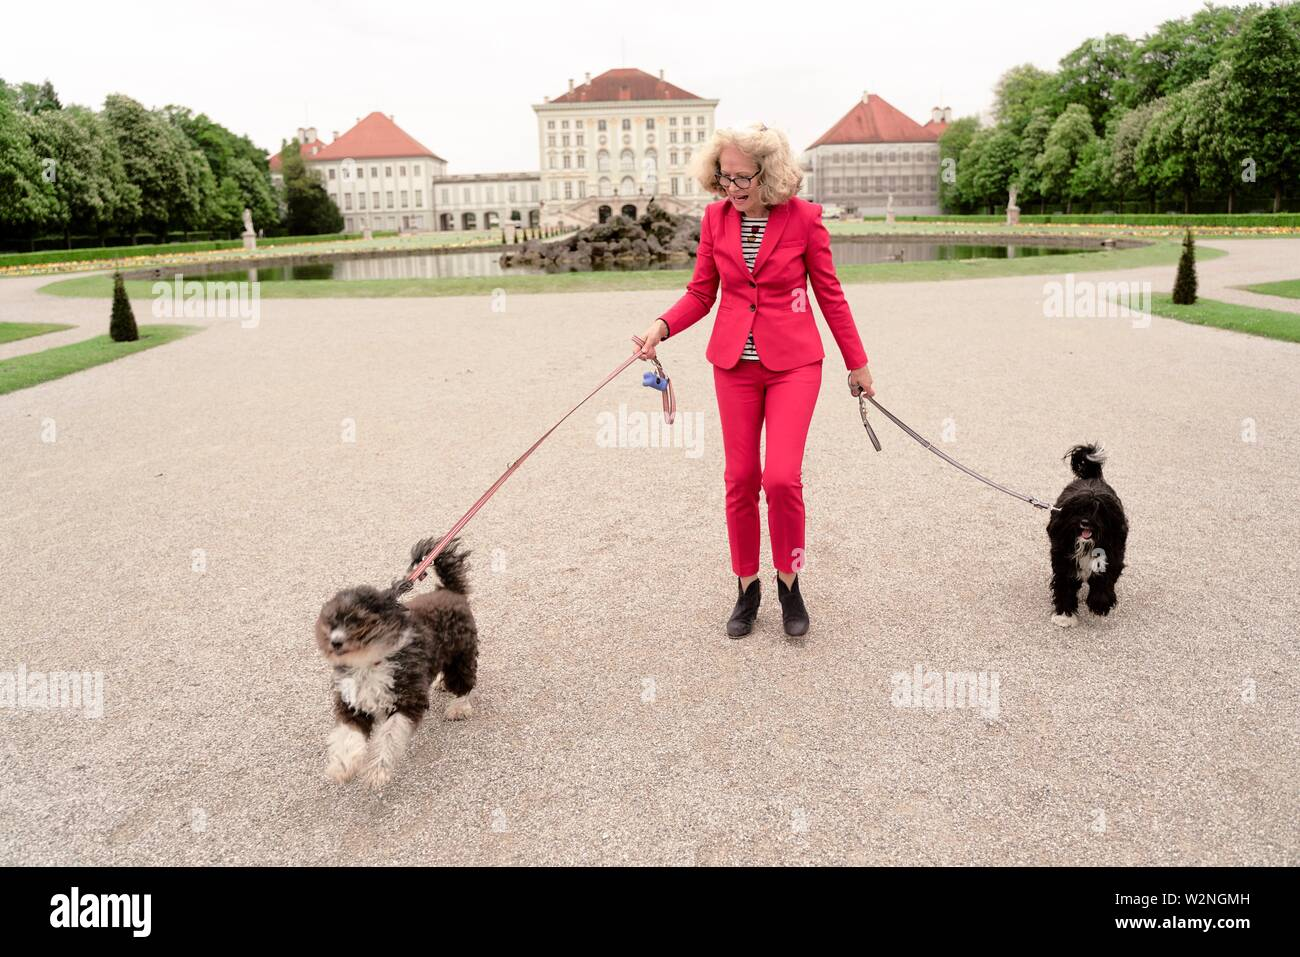 senior woman (67 years old) with dogs on leash at touristic sight Nymphenburg palace, in Munich, Germany. - Stock Image